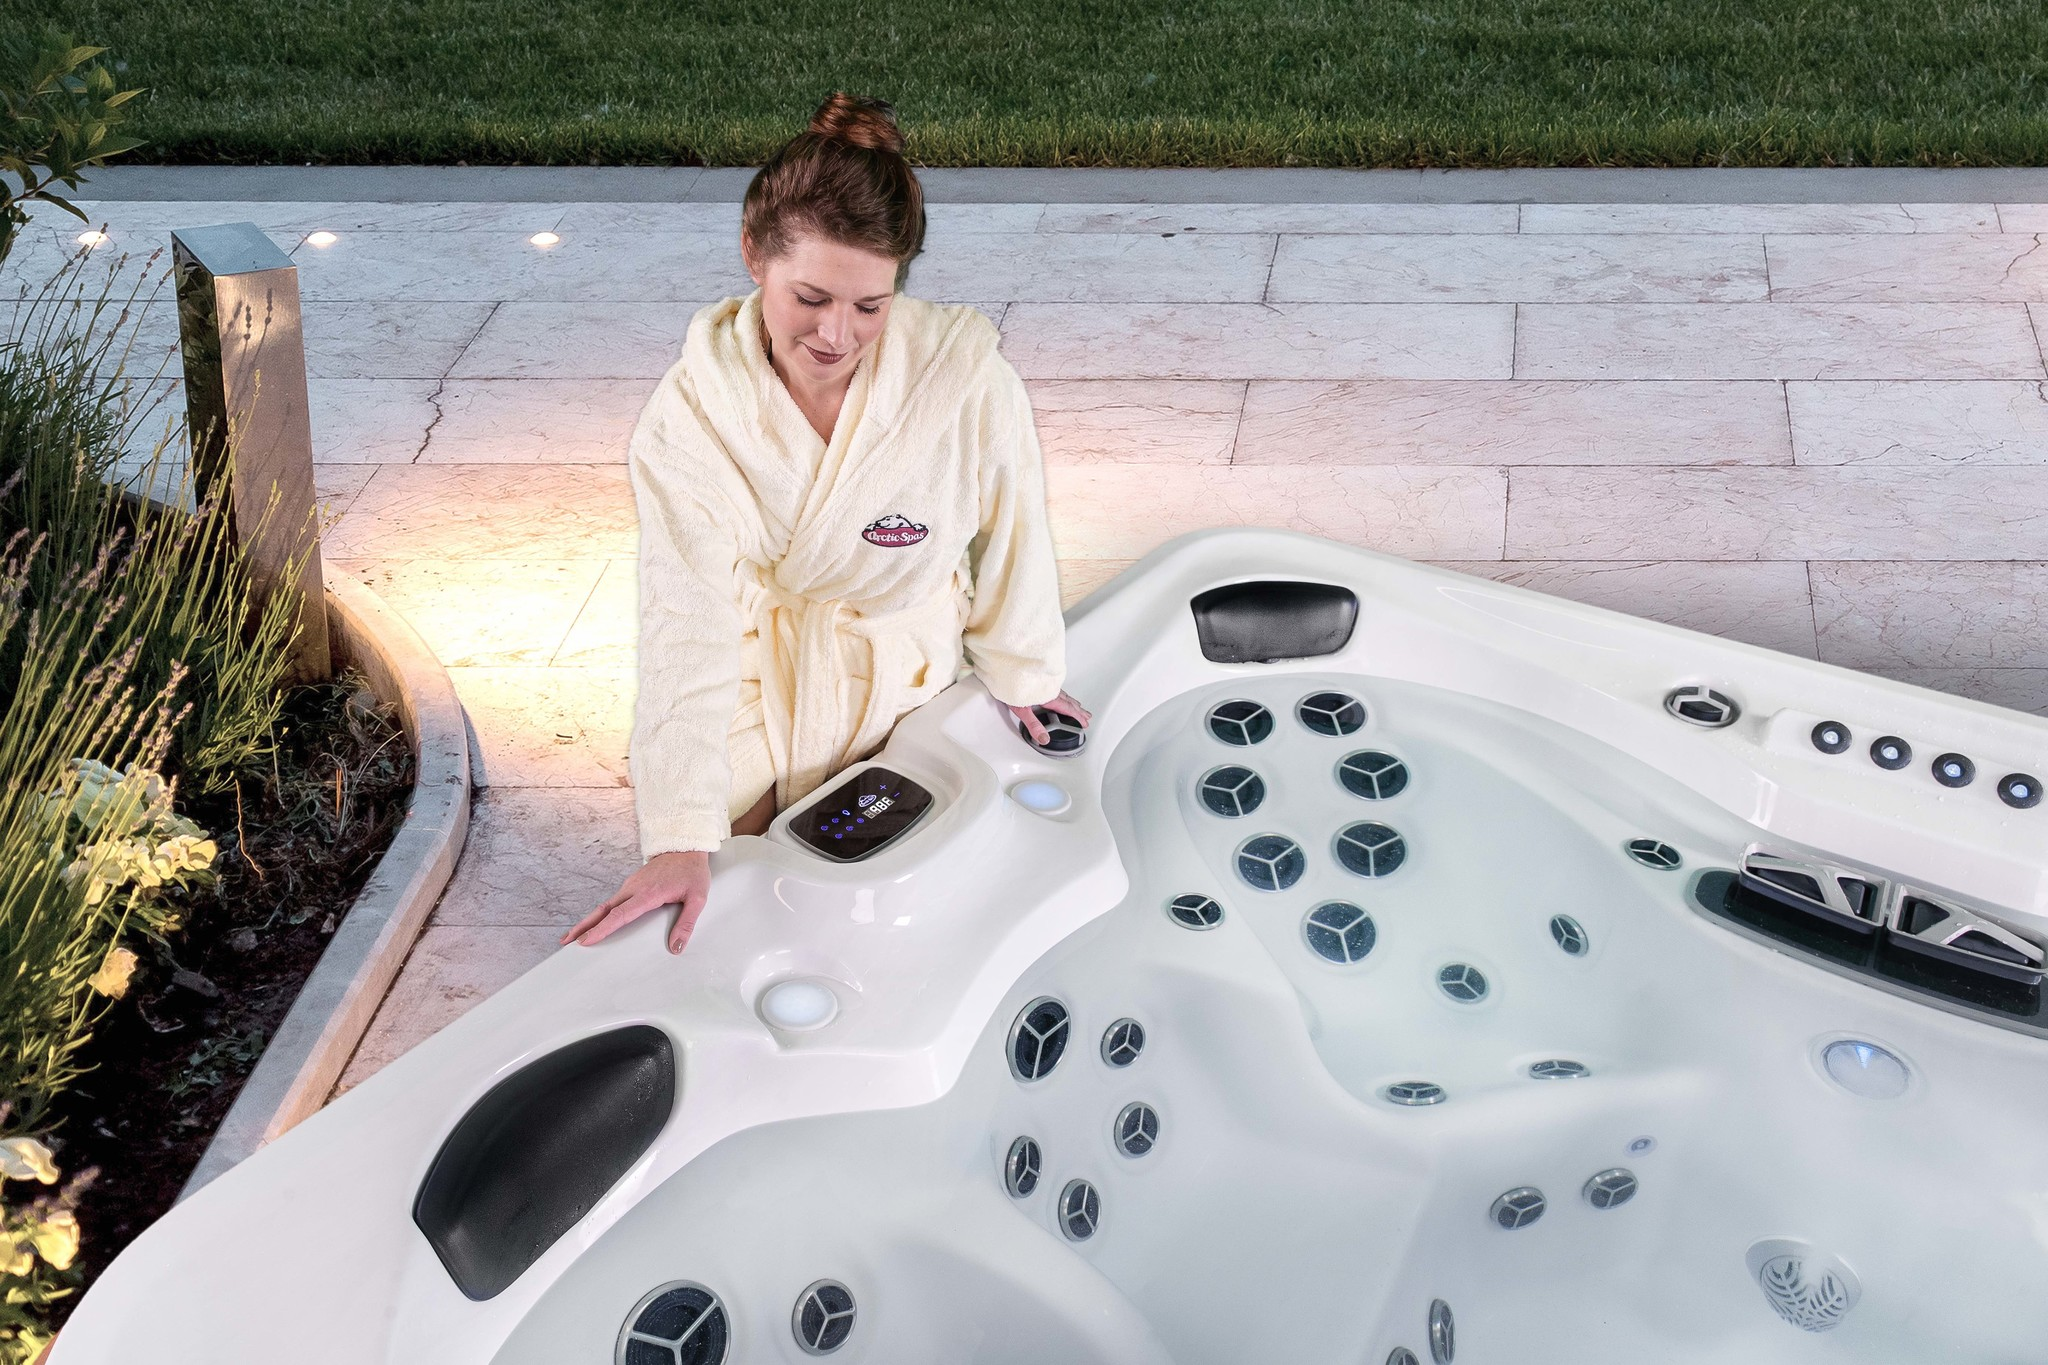 Quality life at Arctic Spas